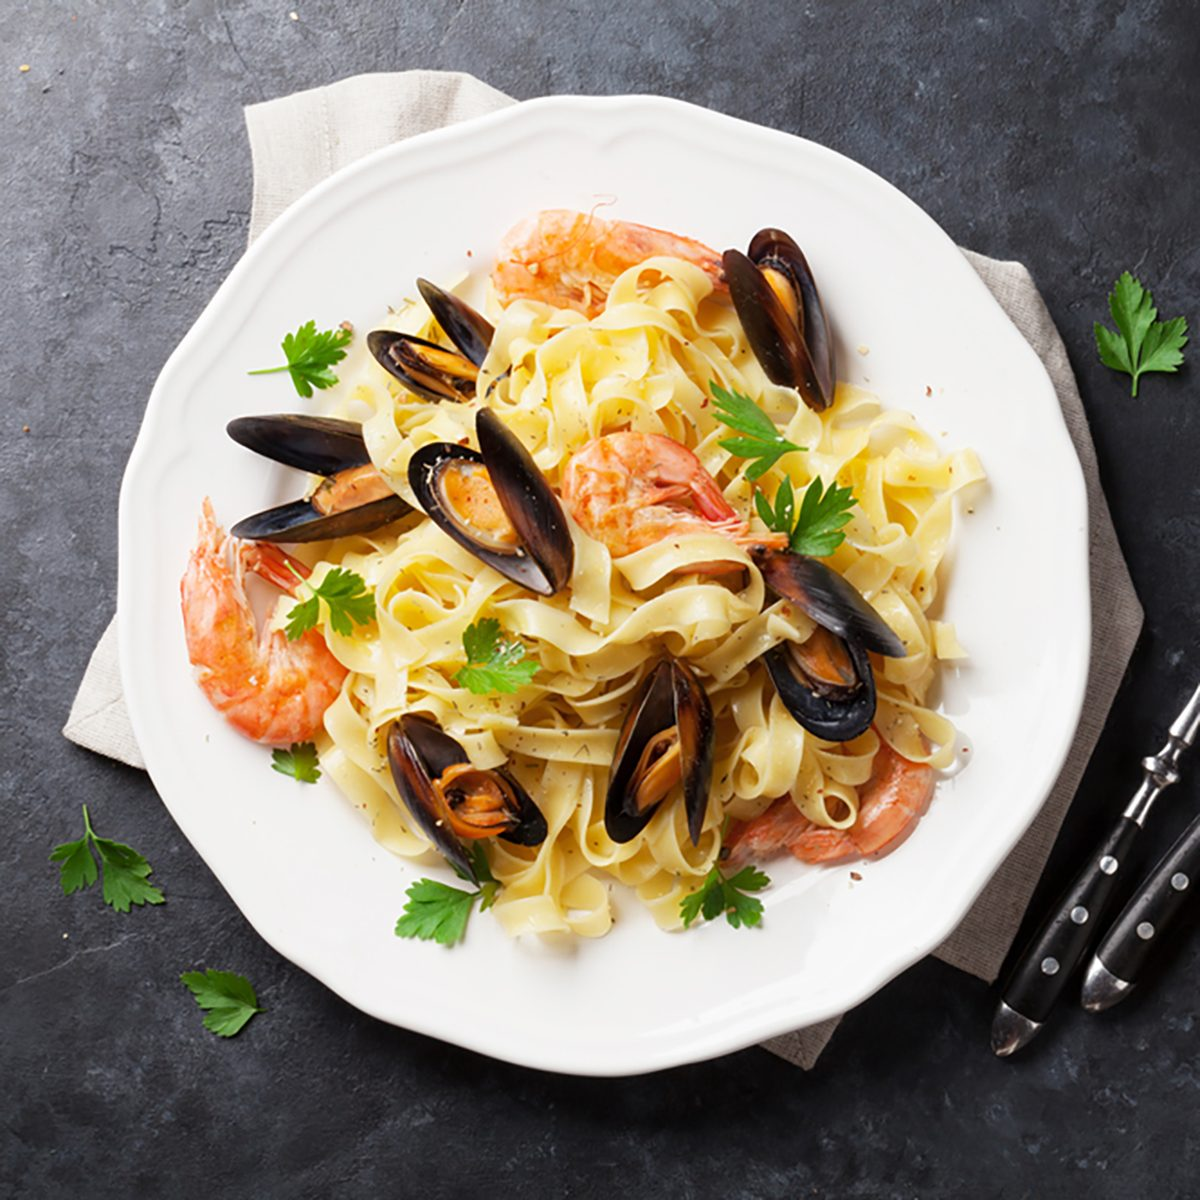 Pasta with seafood and white wine on stone table. Mussels and prawns.